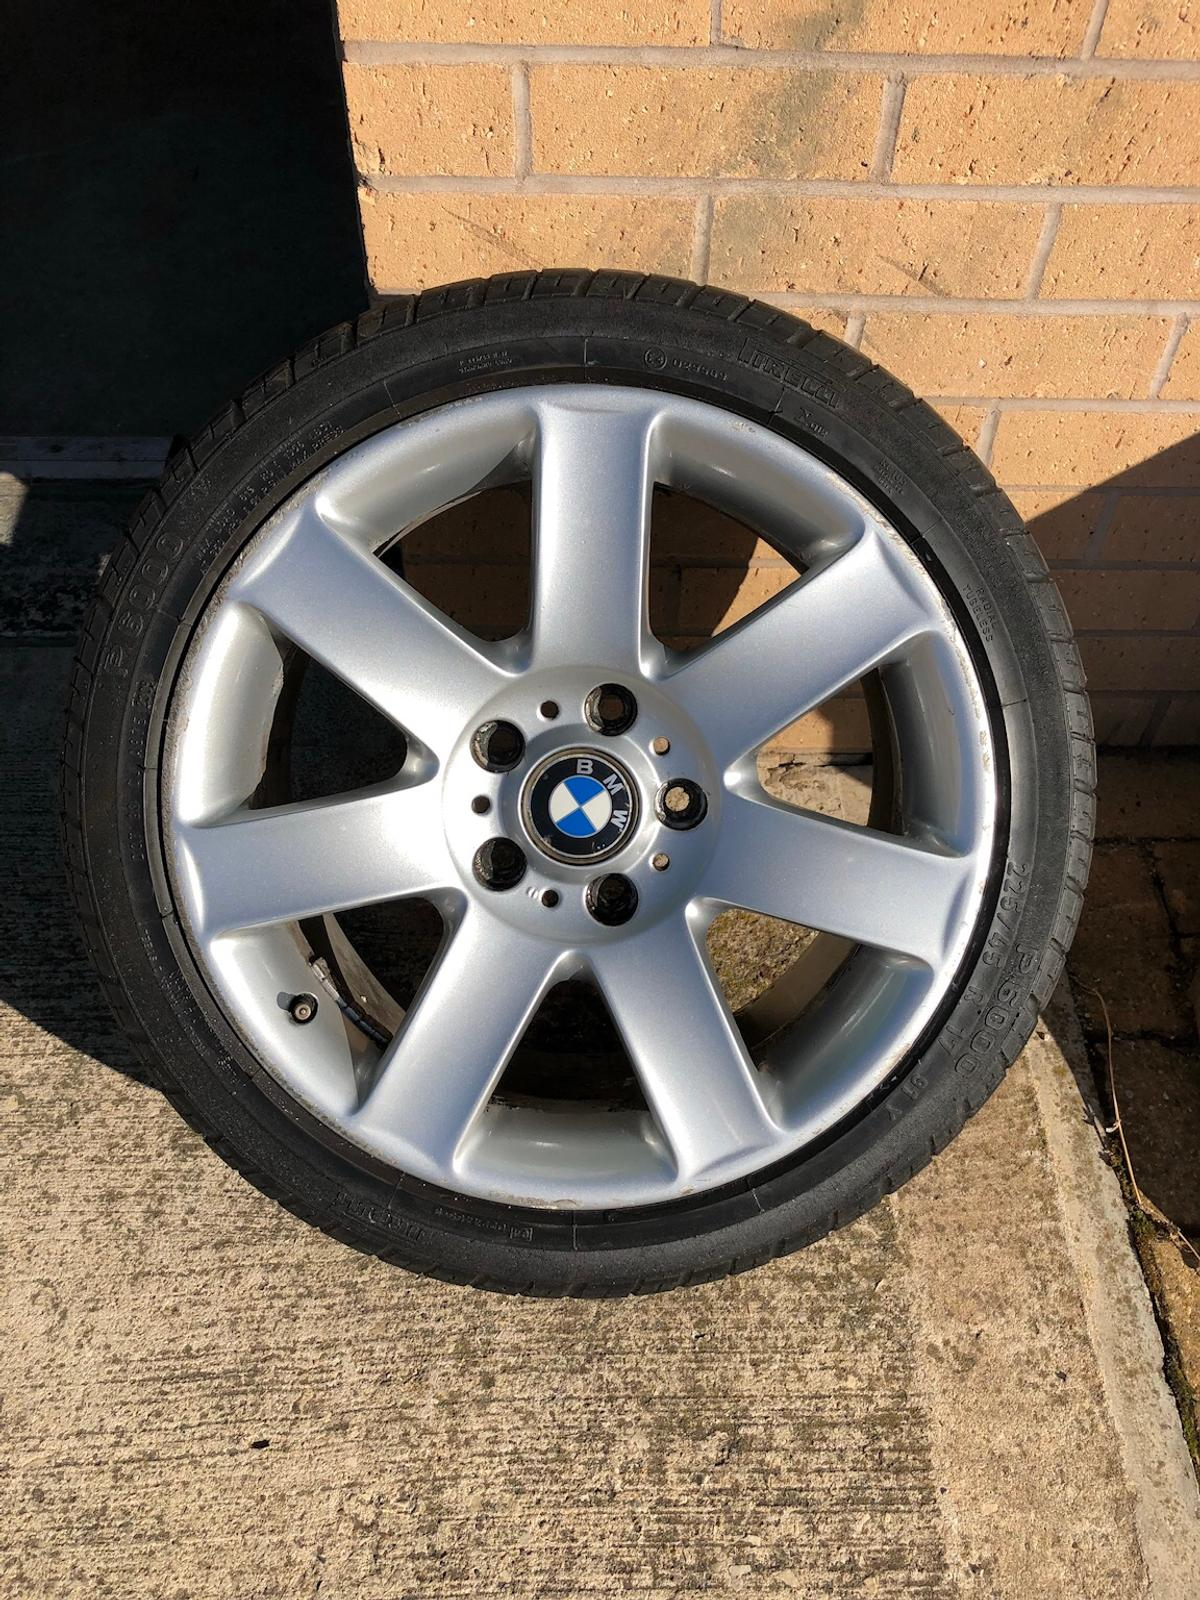 Genuine Bmw E46 17 Style 44 Alloy Wheels In Ls25 Leeds For 90 00 For Sale Shpock